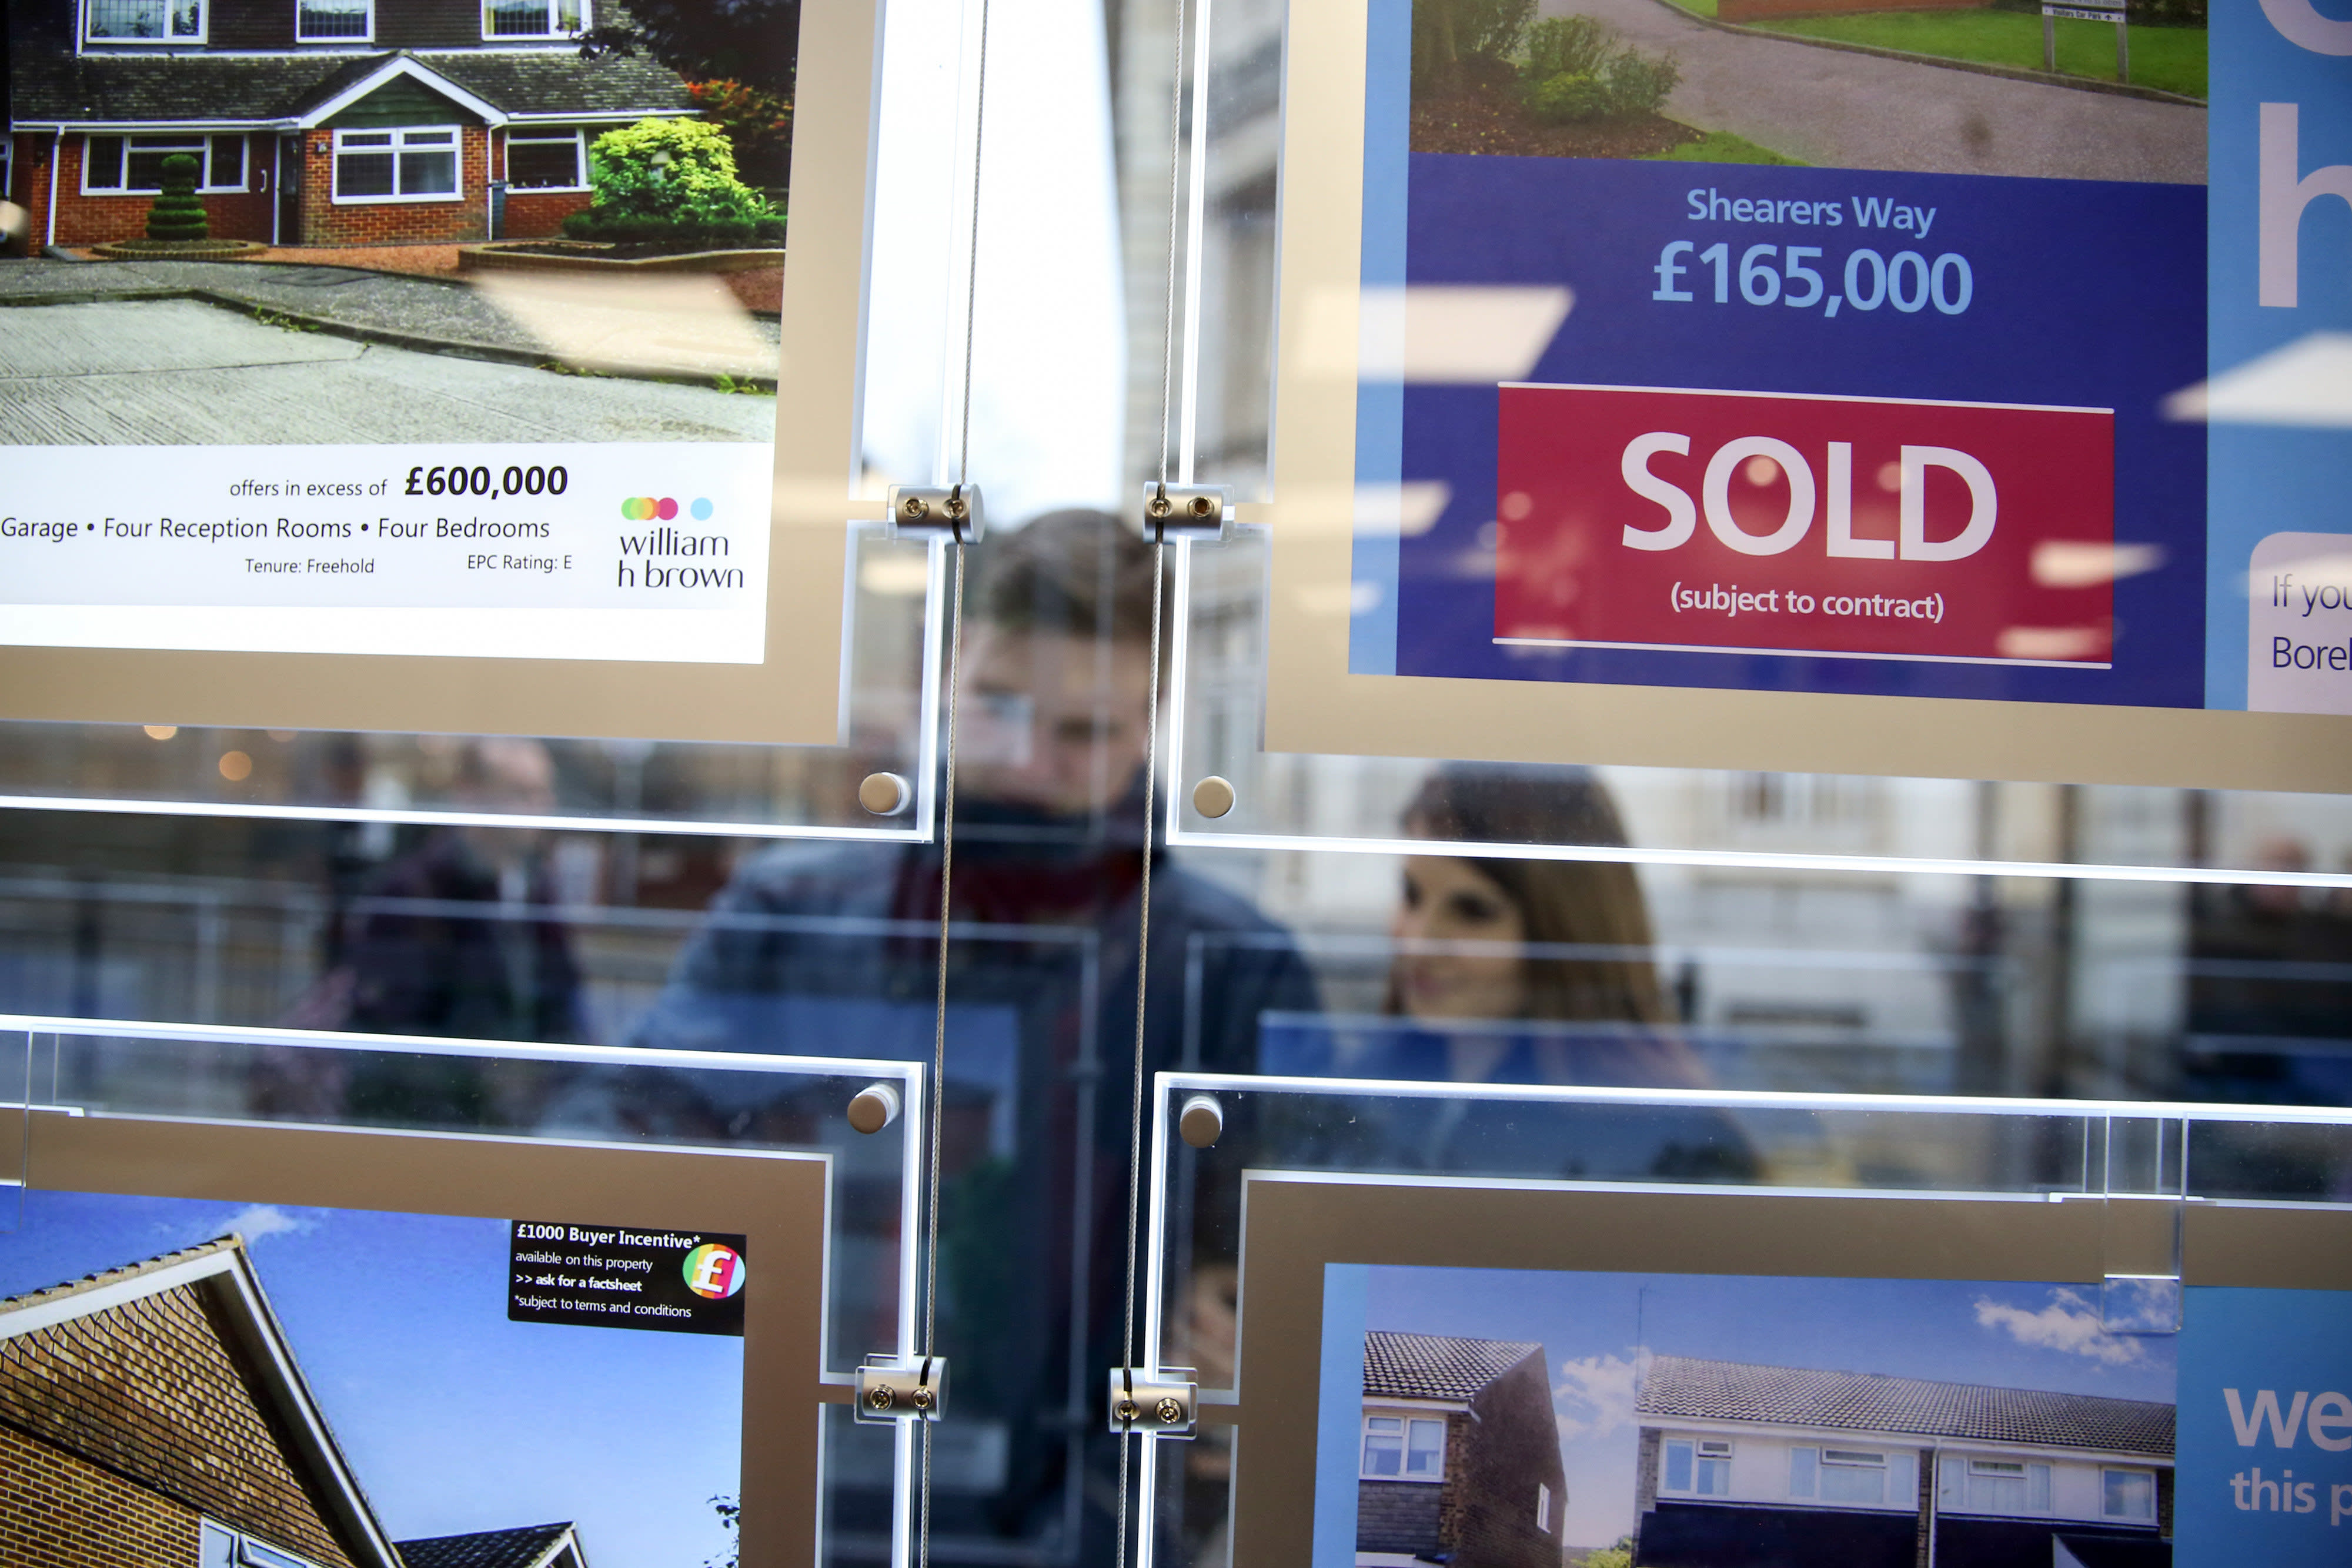 Renting 'cheaper than buying'